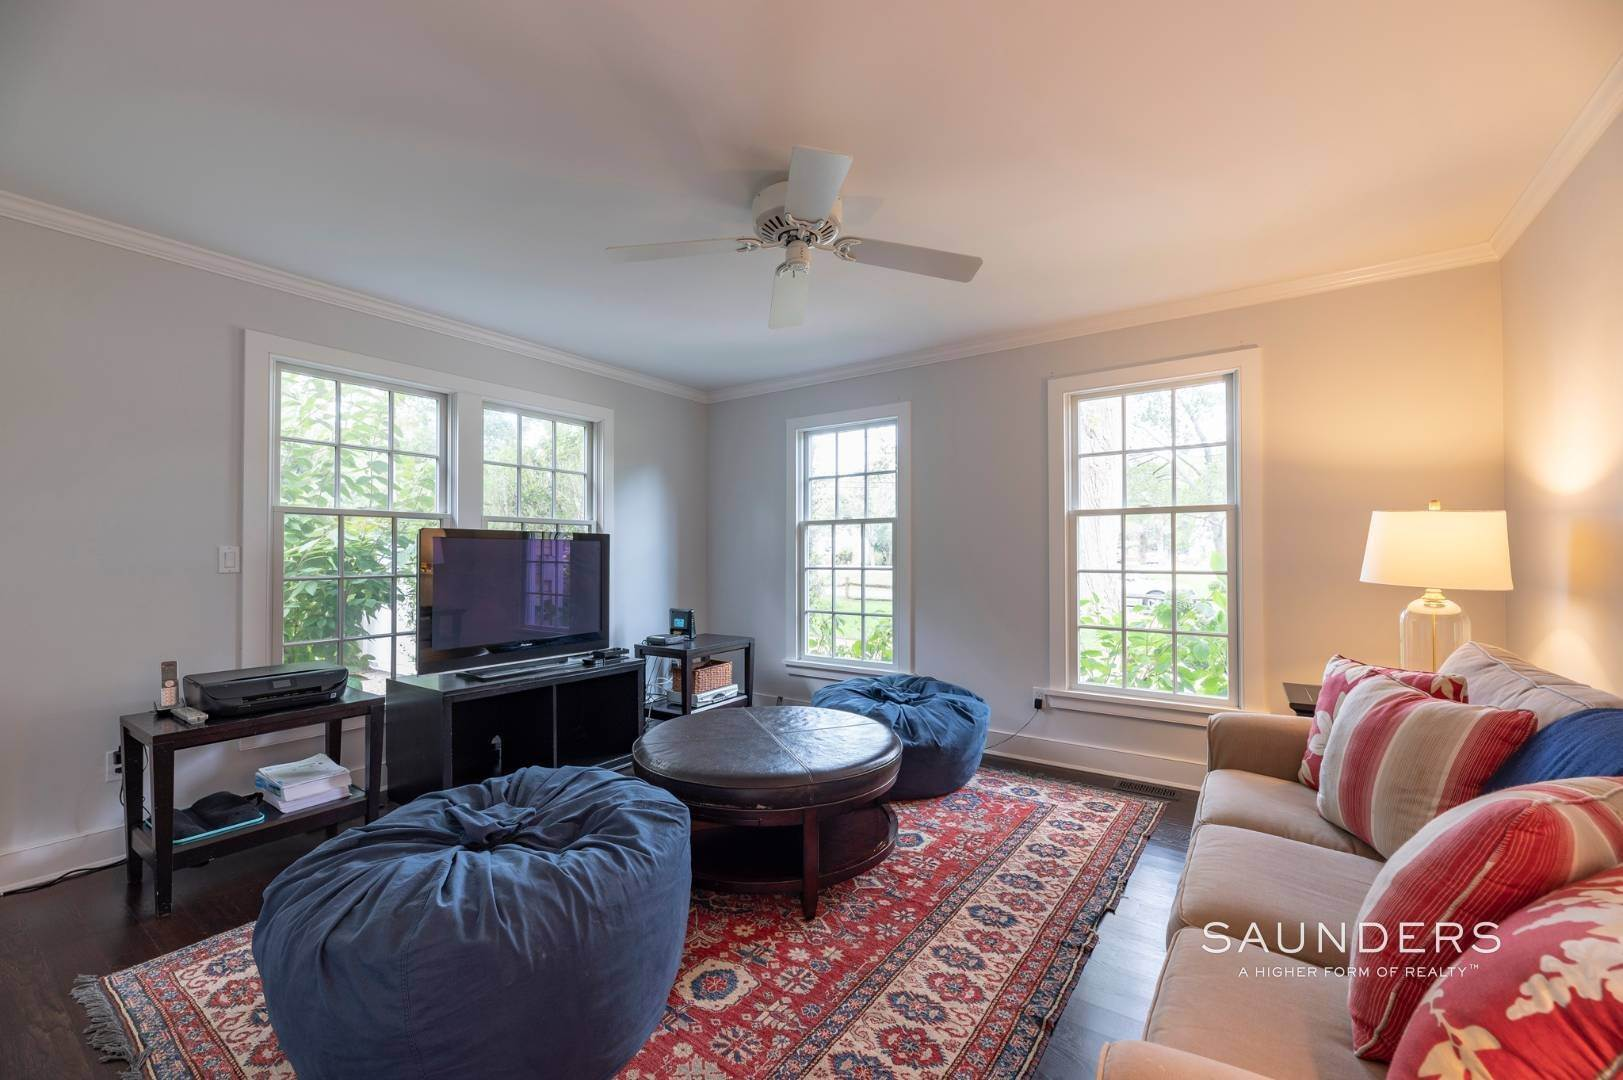 8. Single Family Homes for Sale at East Hampton Village Traditional South Of The Highway 21 Buckskill Road, East Hampton, East Hampton Town, NY 11937